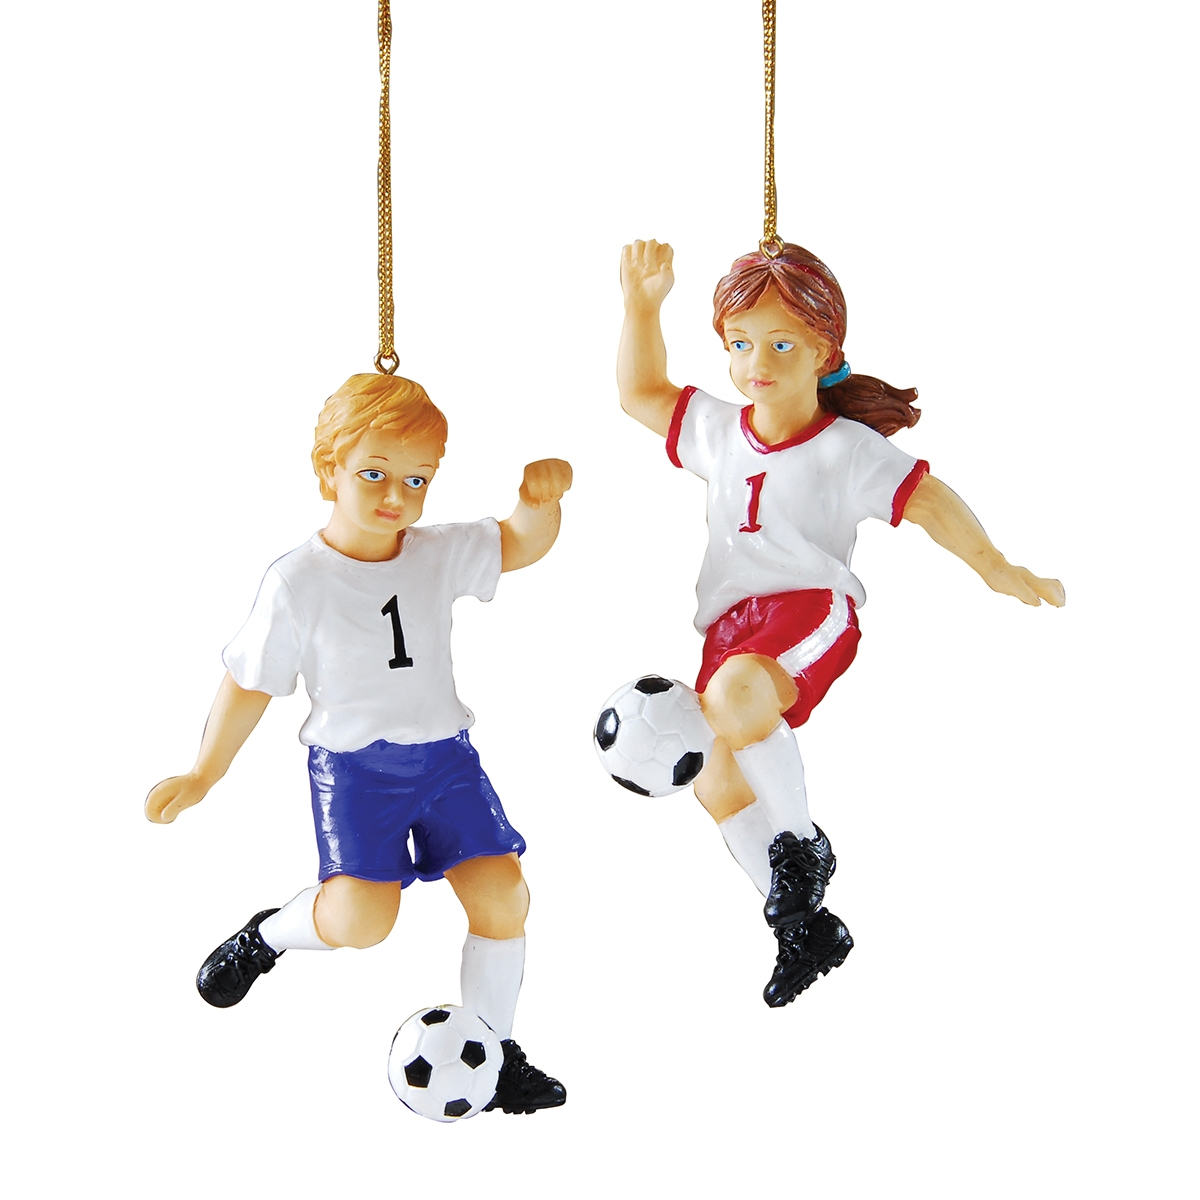 Football player ornament - Young Soccer Player Ornament A 2